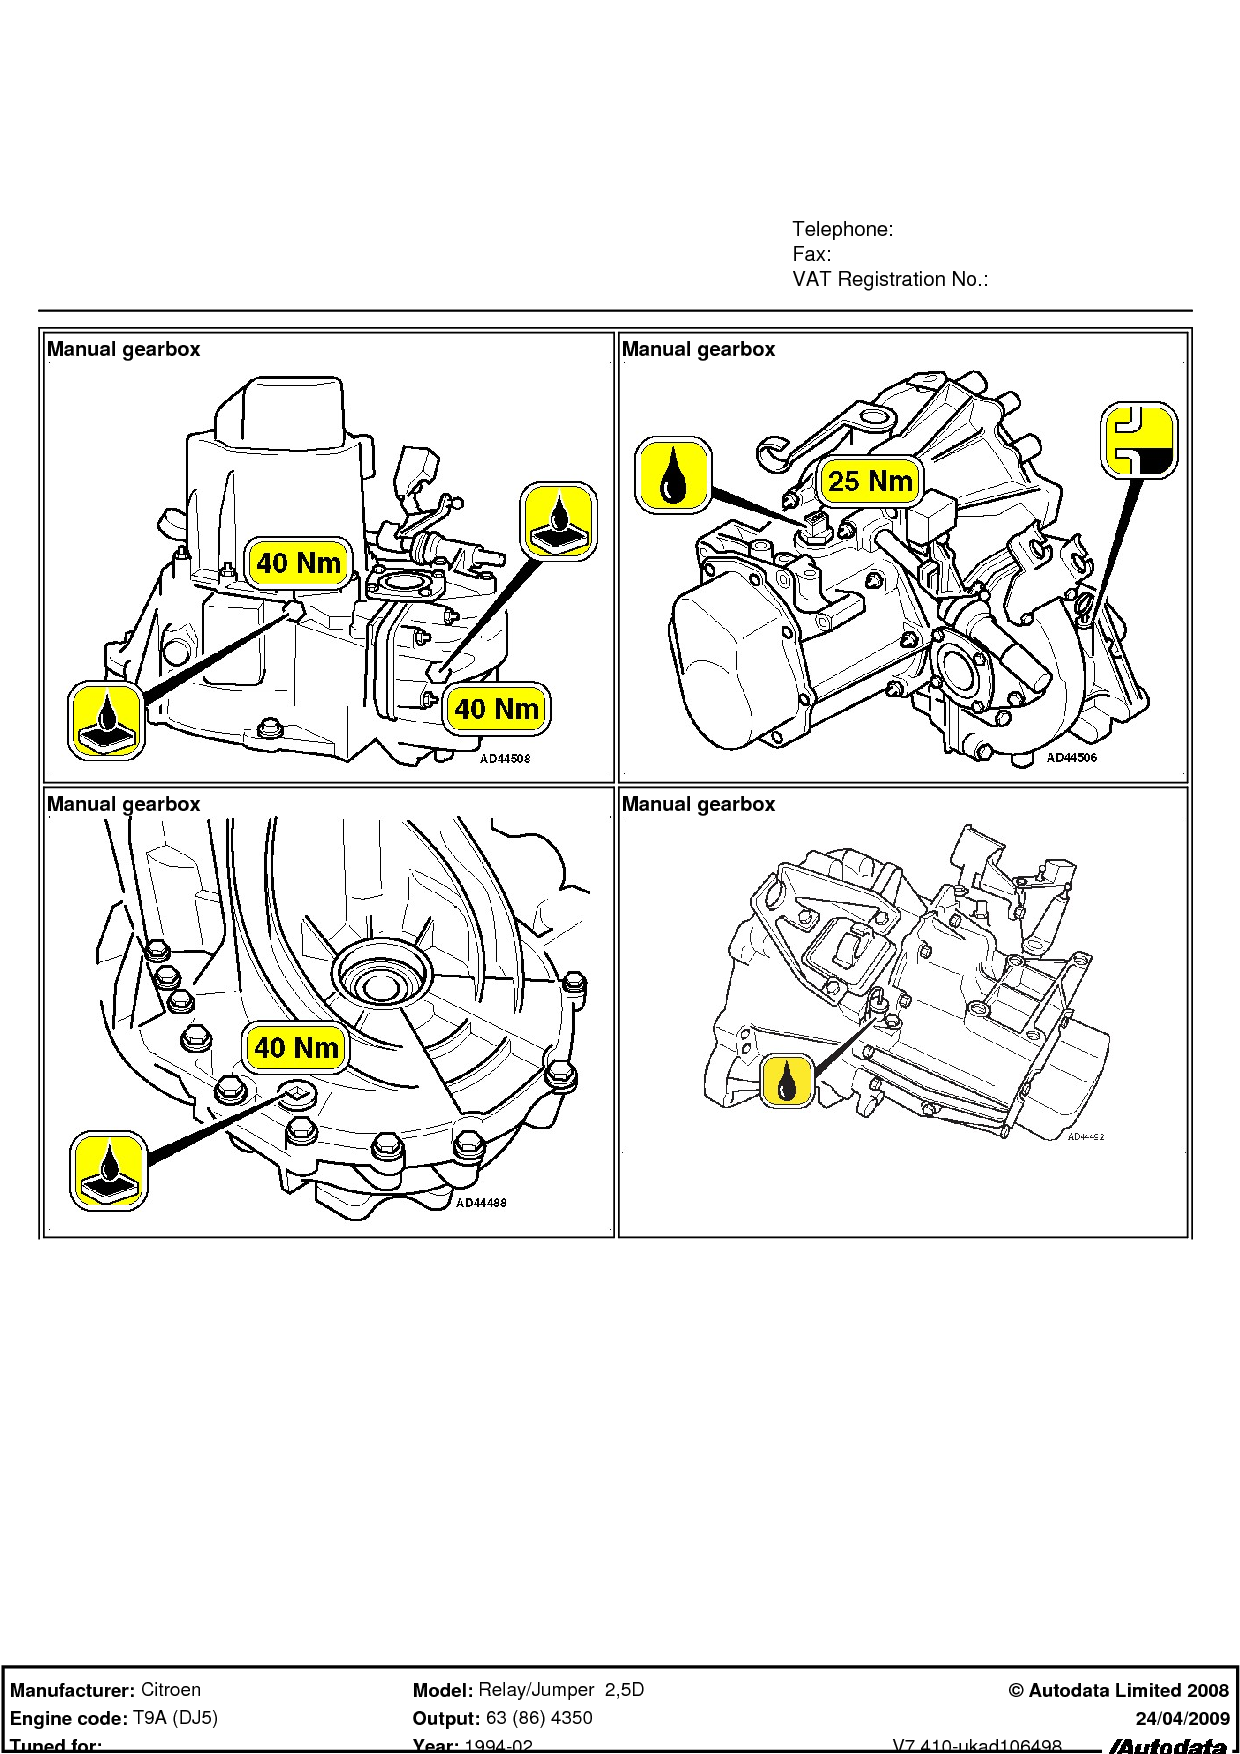 Any chance you would know where the gearbox oil filler is on a ... on universal joint diagram, flywheel diagram, timing belt diagram, exhaust system diagram, drive train diagram, carburetor diagram, brakes diagram, drive shaft diagram, gearbox diagram, propeller shaft diagram, wheels diagram, automatic gear diagram, rear end diagram, ladder rack diagram, axle diagram, engine diagram, differential diagram, hydraulic pump diagram, power valve diagram, spark plug gap diagram,